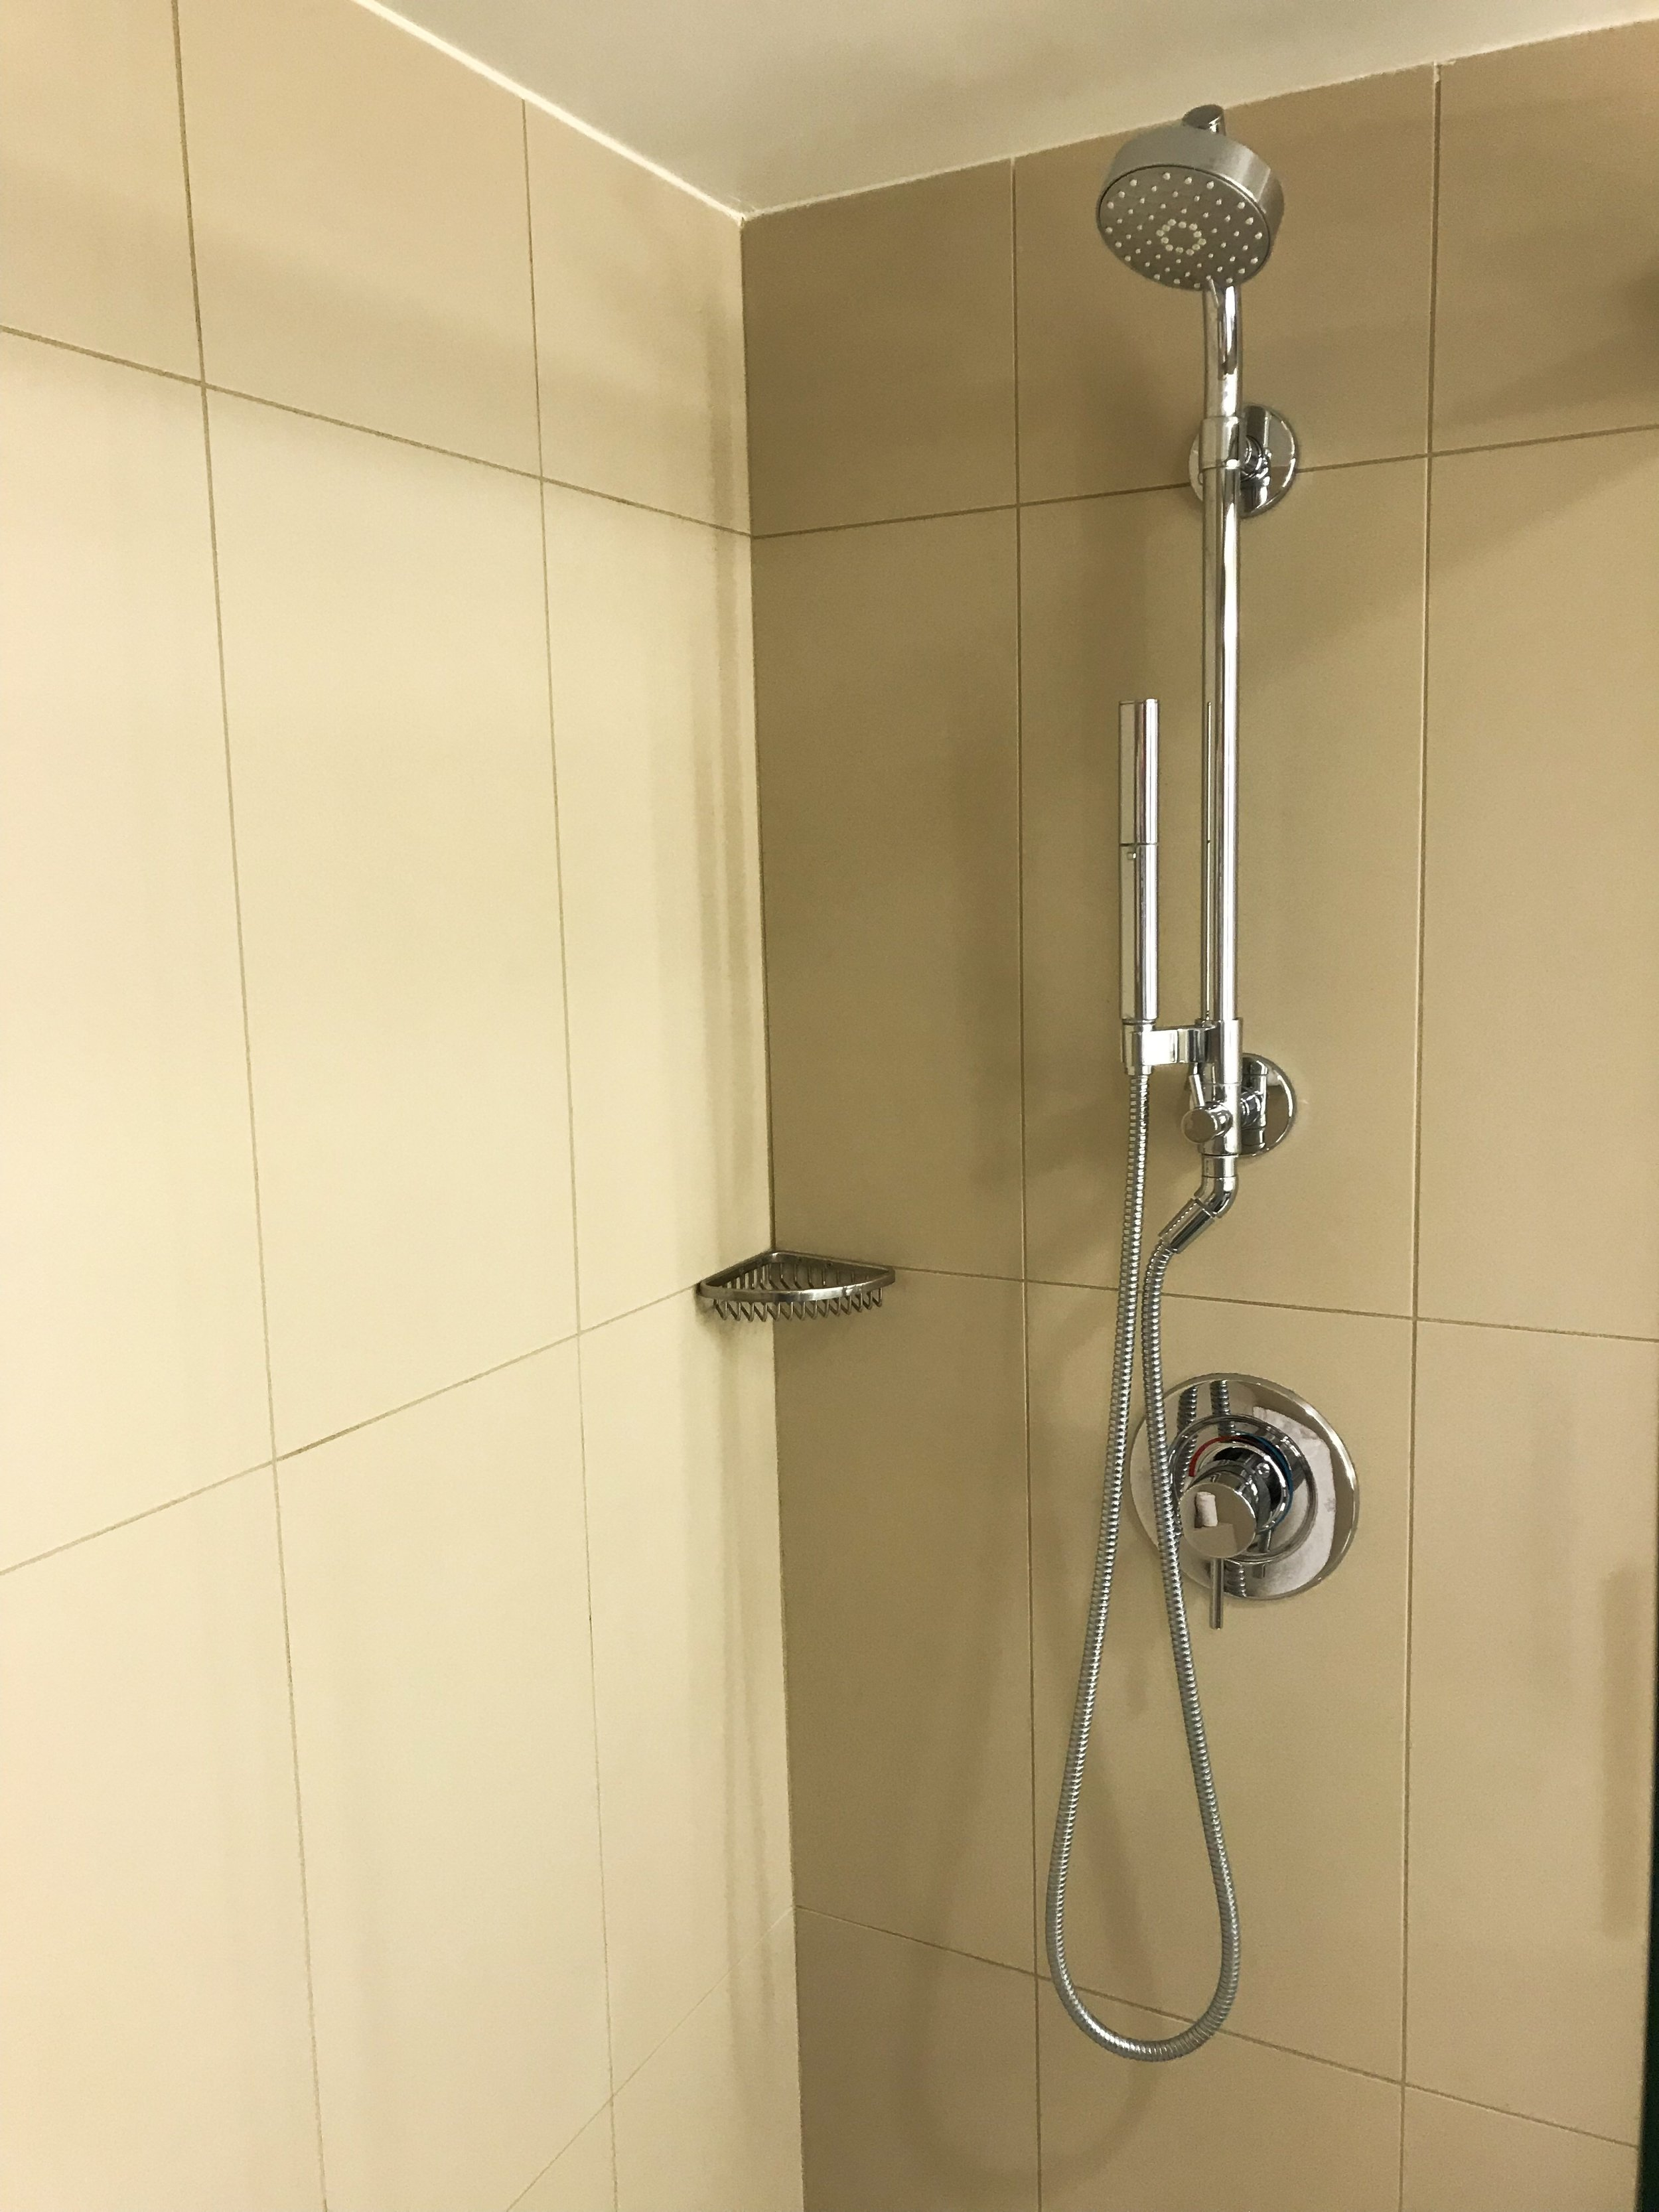 The shower also had a handheld extension.